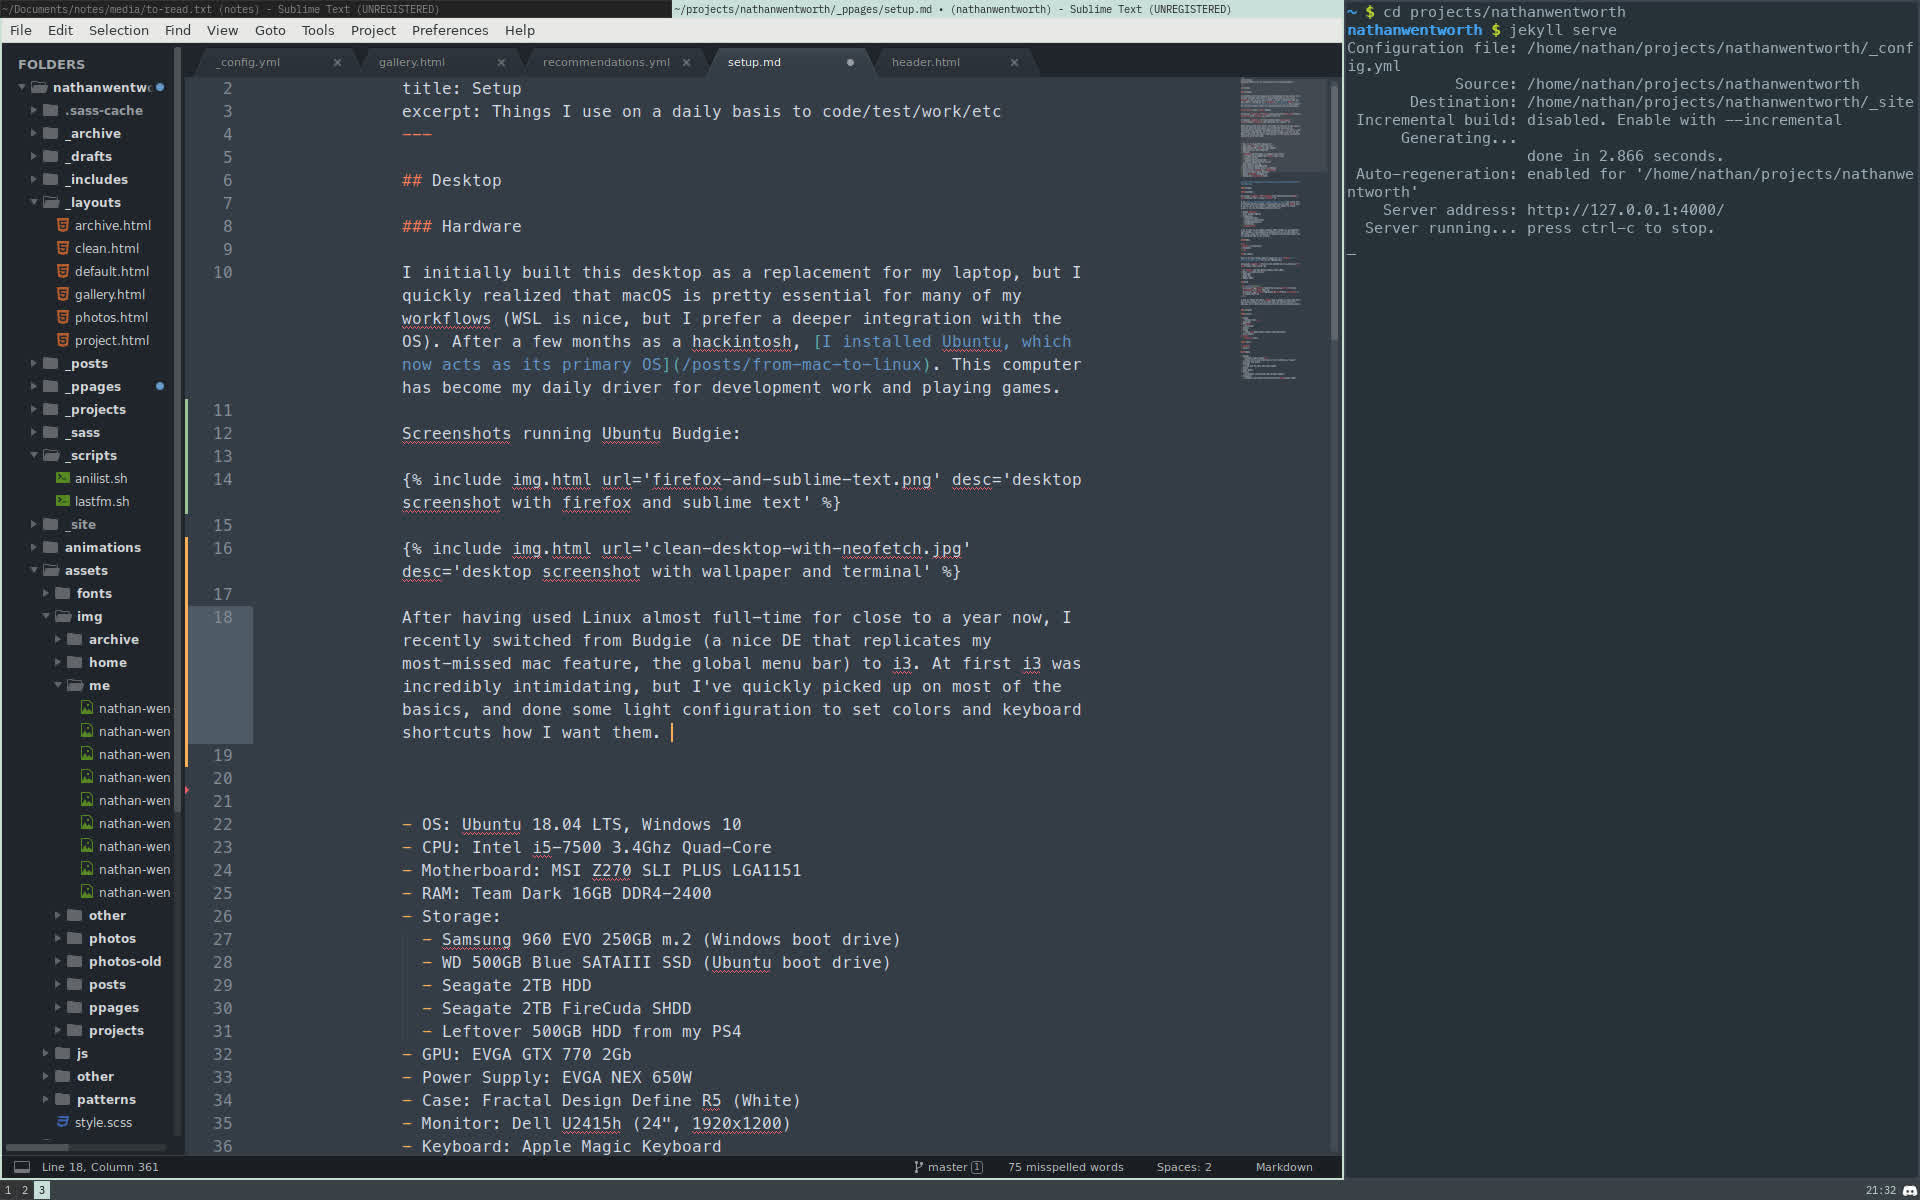 screenshot of sublime text and a terminal